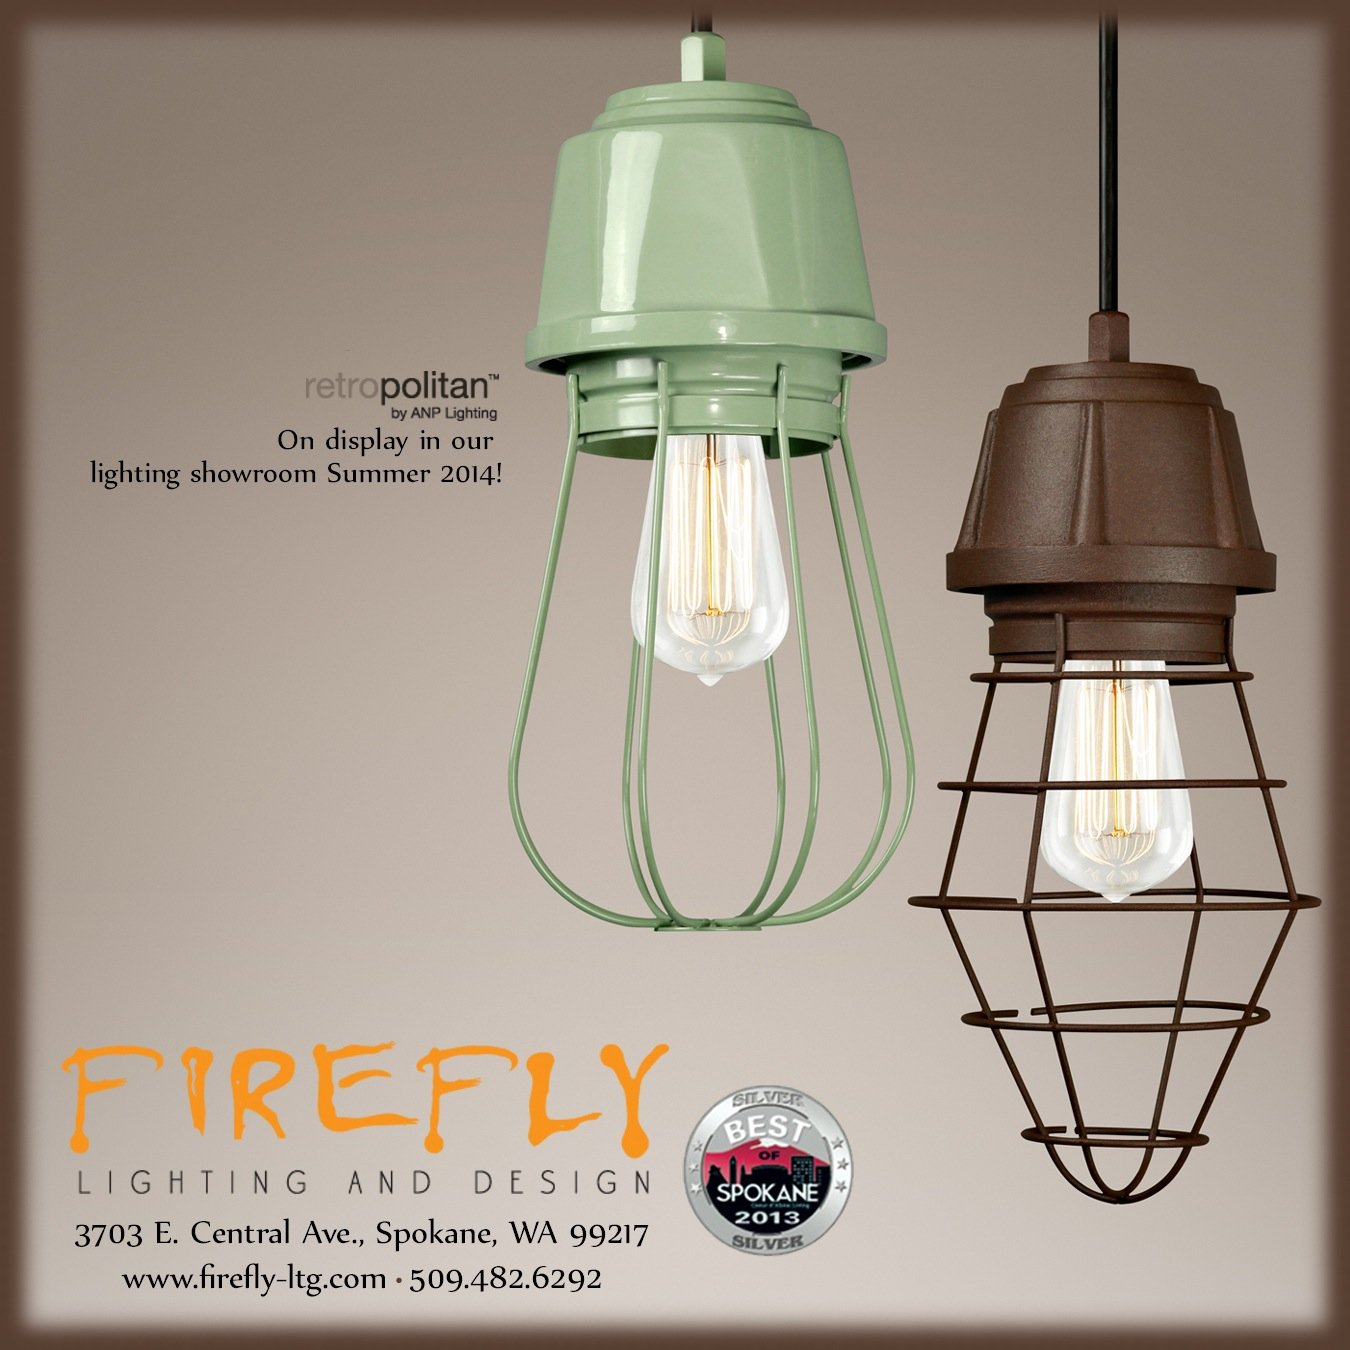 Firefly lighting